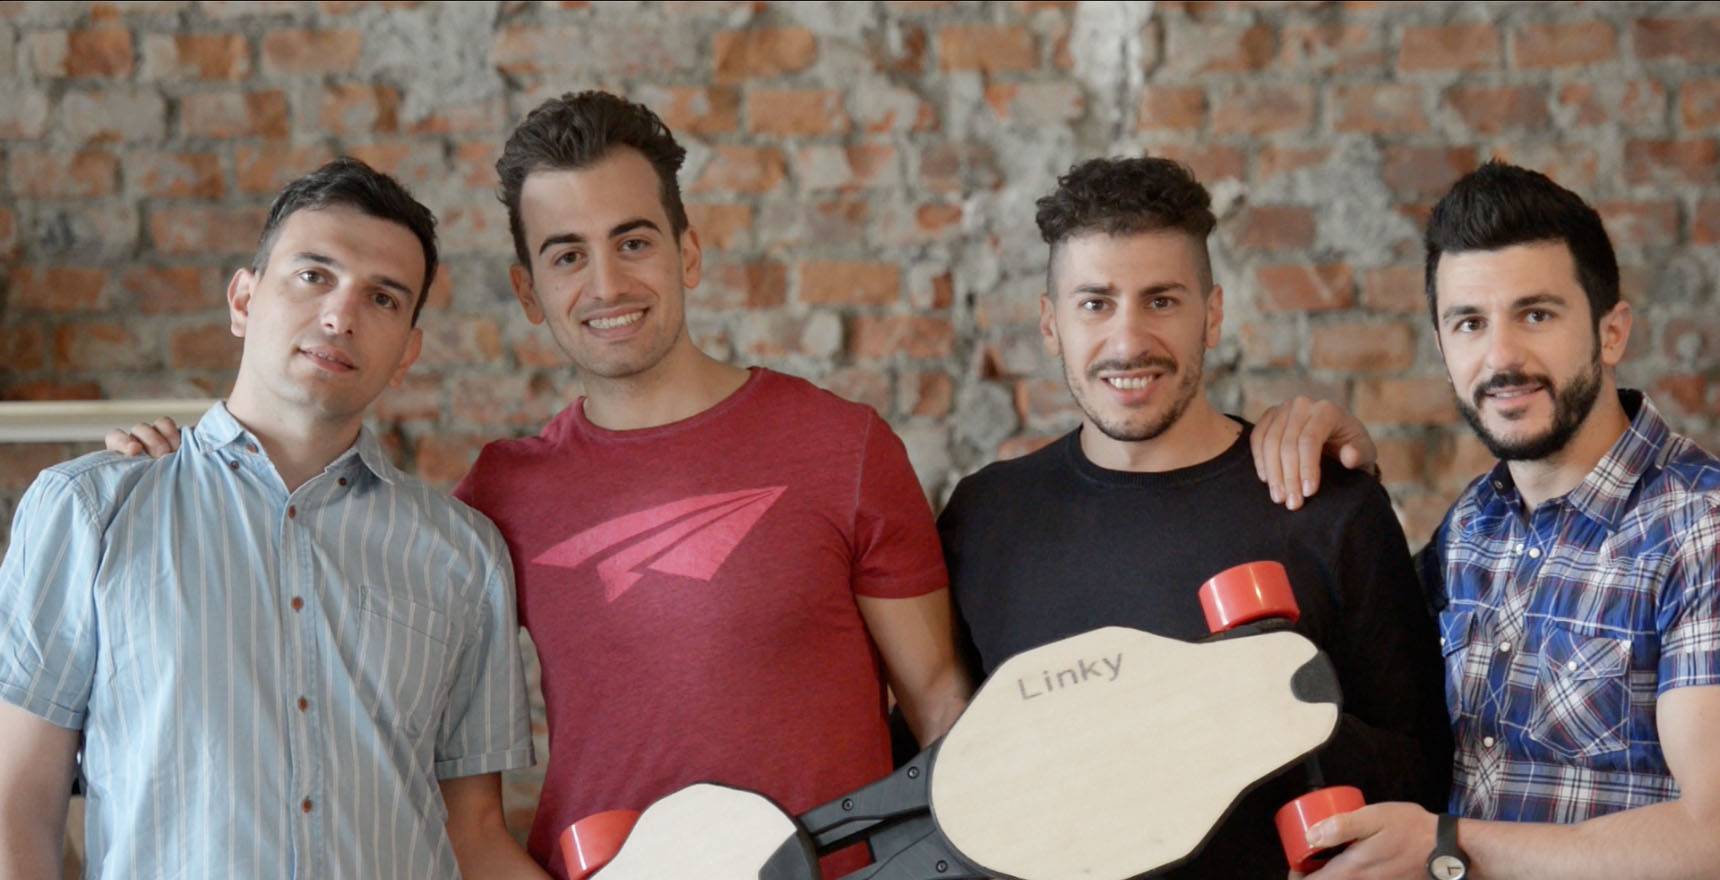 linky-startup-group-photo